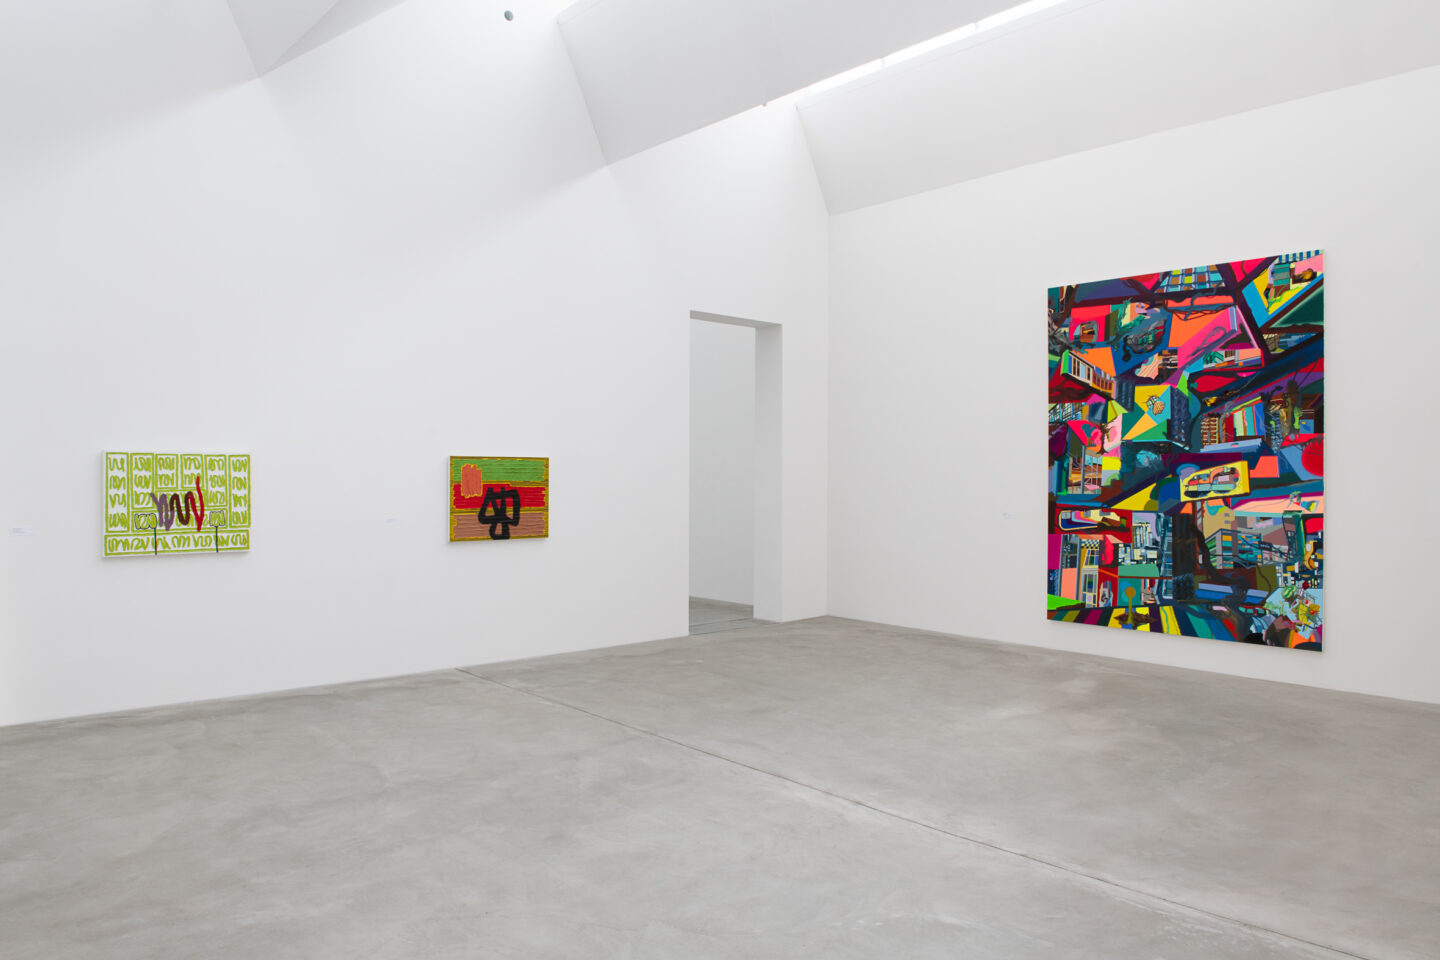 Exhibition View Groupshow «Frozen Gesture ; view on Jonathan Lasker, How to Be Unique, 1993 (Courtesy: the artist), The Banner of Daily Existence, 1993 (Courtesy: the artist) and Wall Mall, 2018 (Courtesy the artist and Meyer Riegger, Berlin/Karlsruhe)» at Kunstmuseum Winterthur, 2019 / Photo: Sebastian Stadler